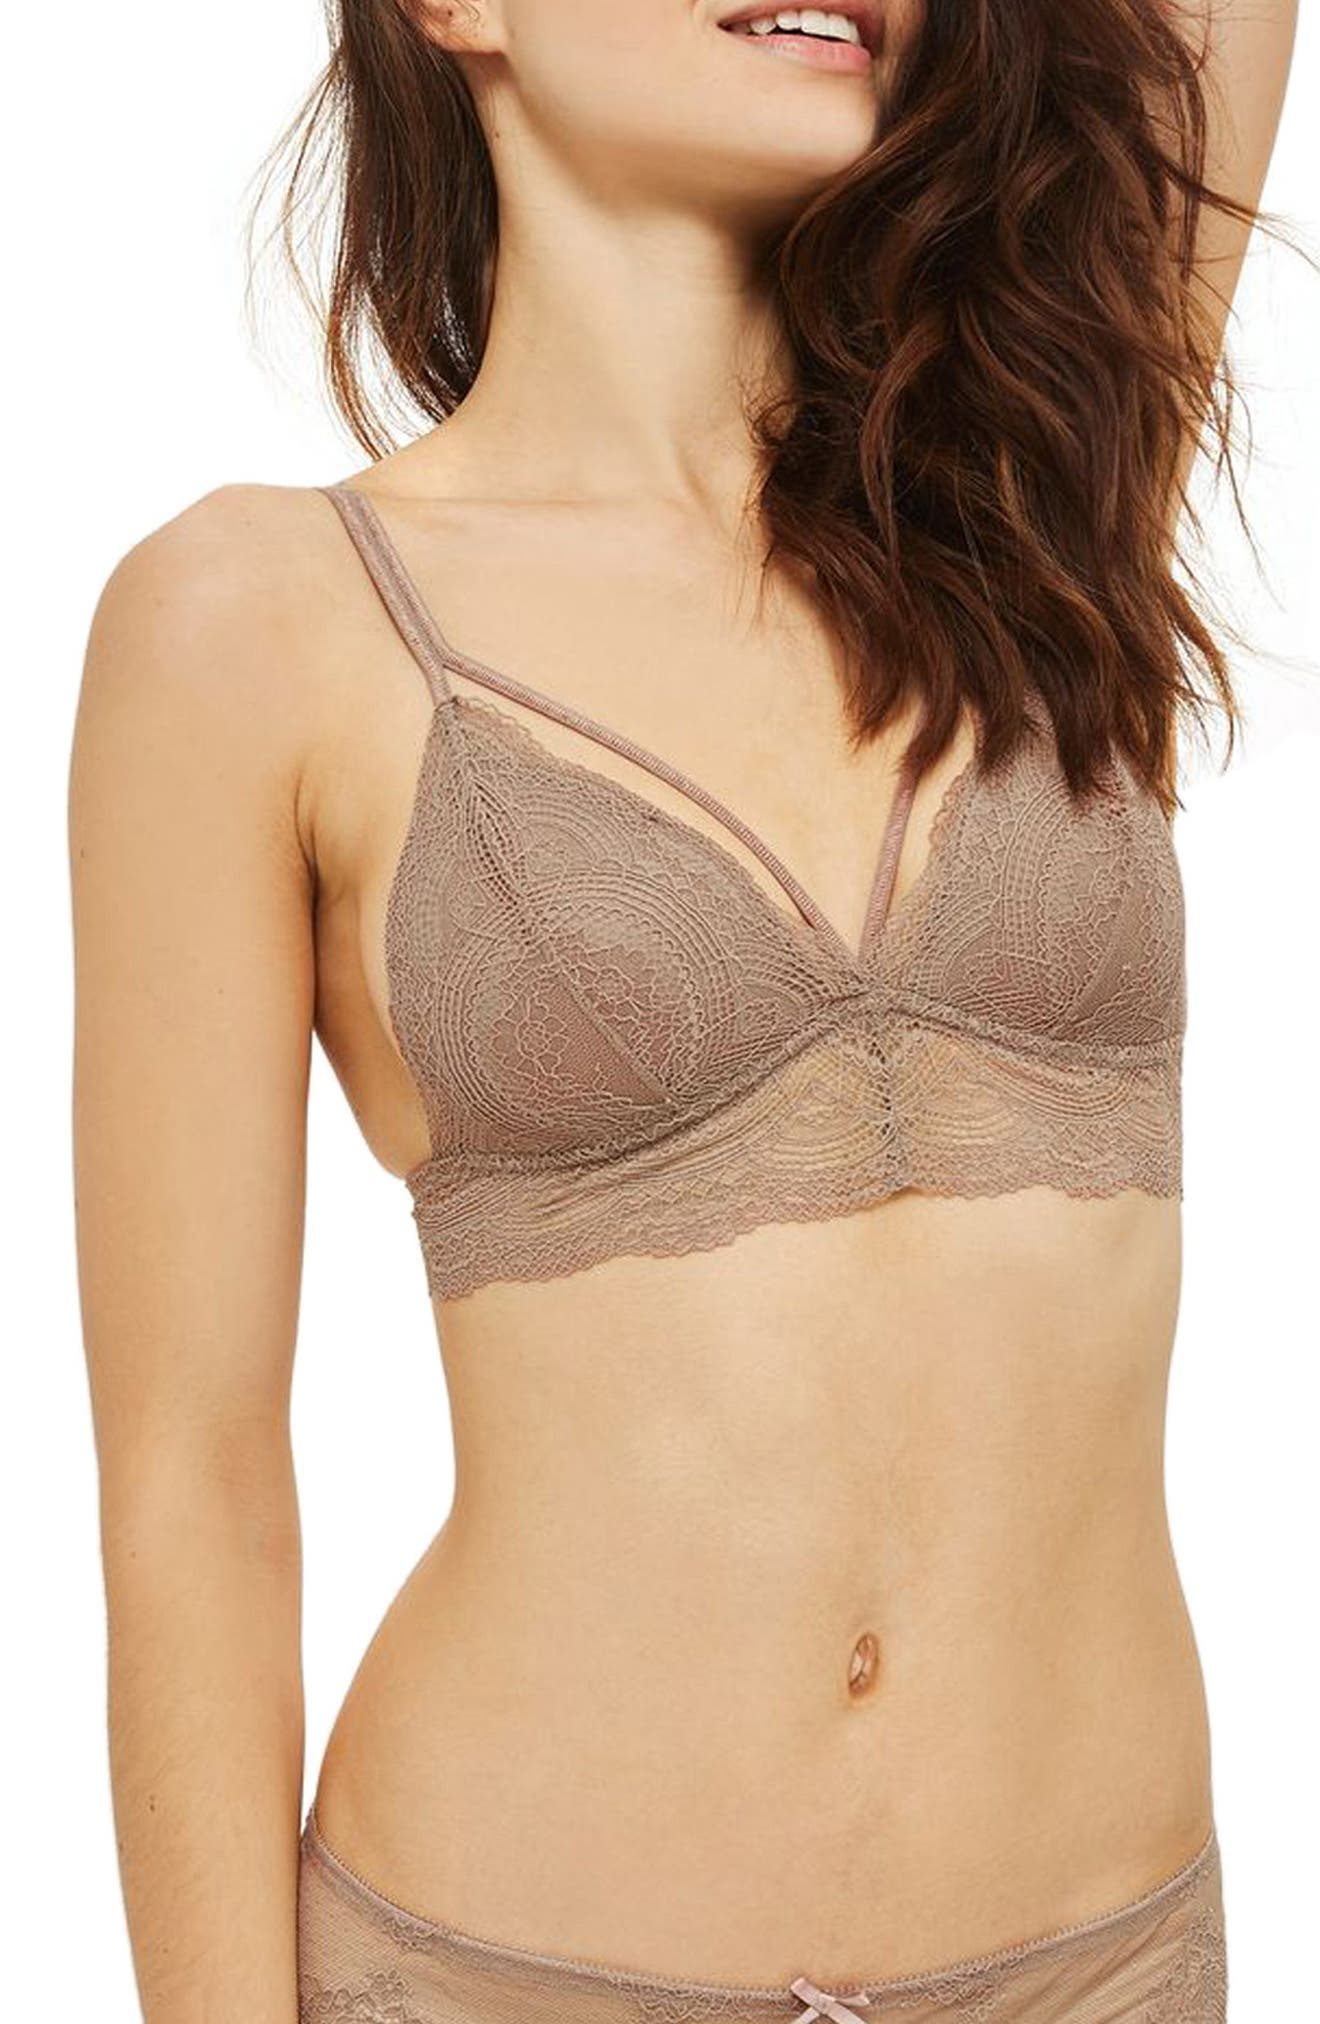 Wild Flower Lace Padded Triangle Bralette,                             Main thumbnail 1, color,                             Taupe